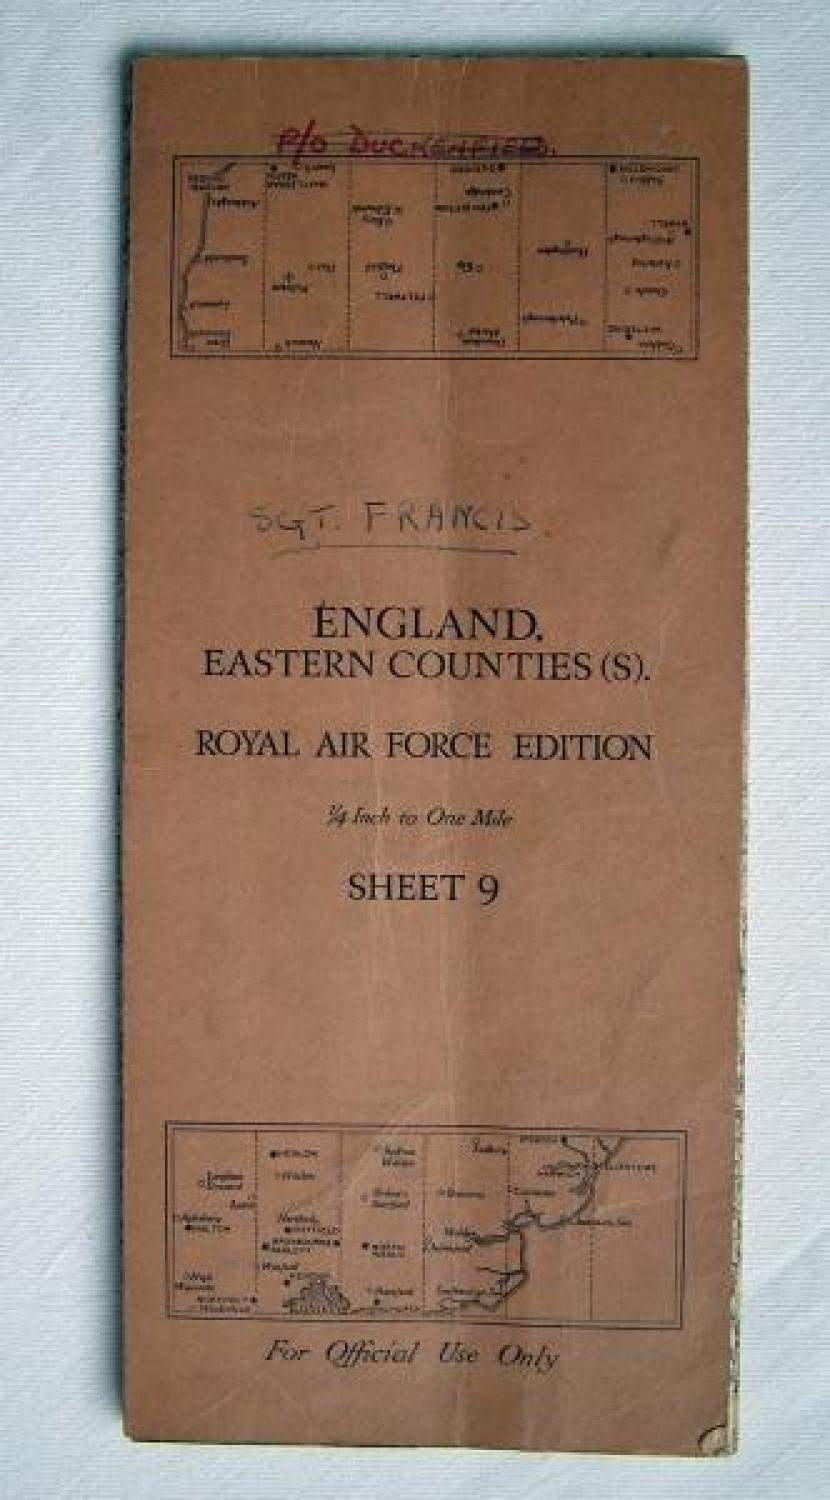 RAF Map - England. Eastern Counties (S)